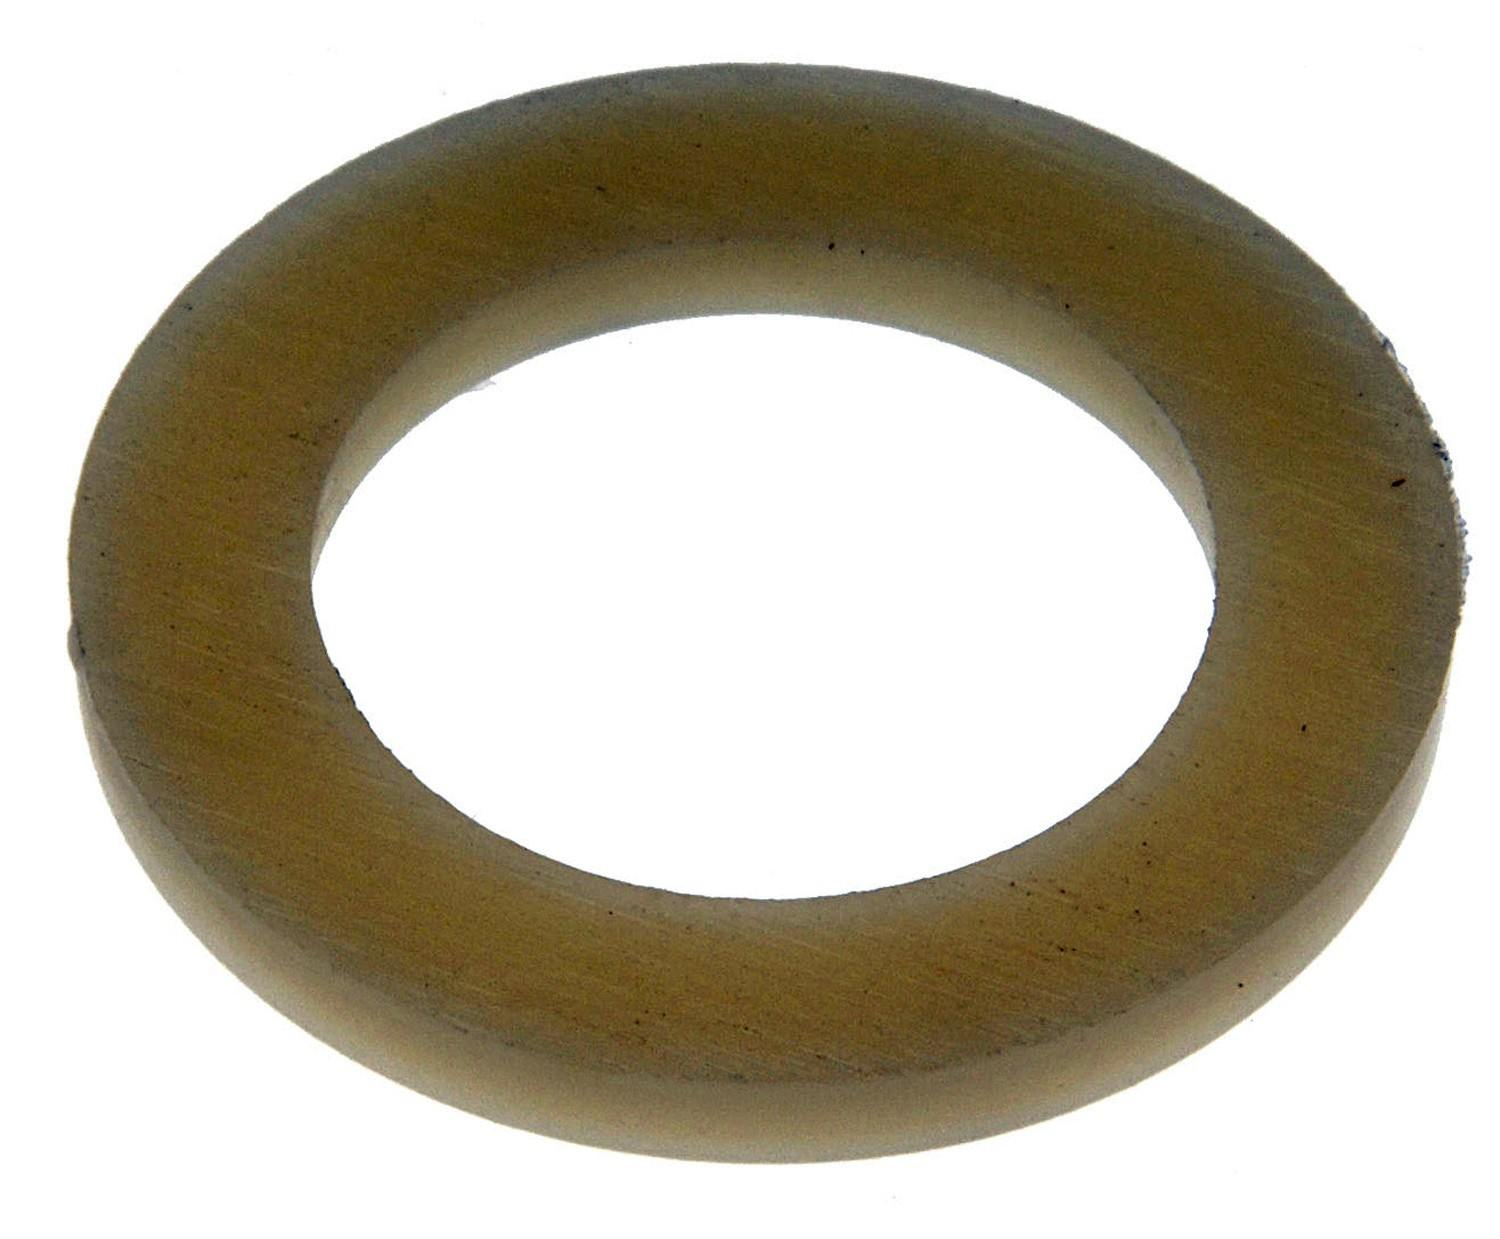 DORMAN - AUTOGRADE - Engine Oil Drain Plug Gasket - DOC 097-002